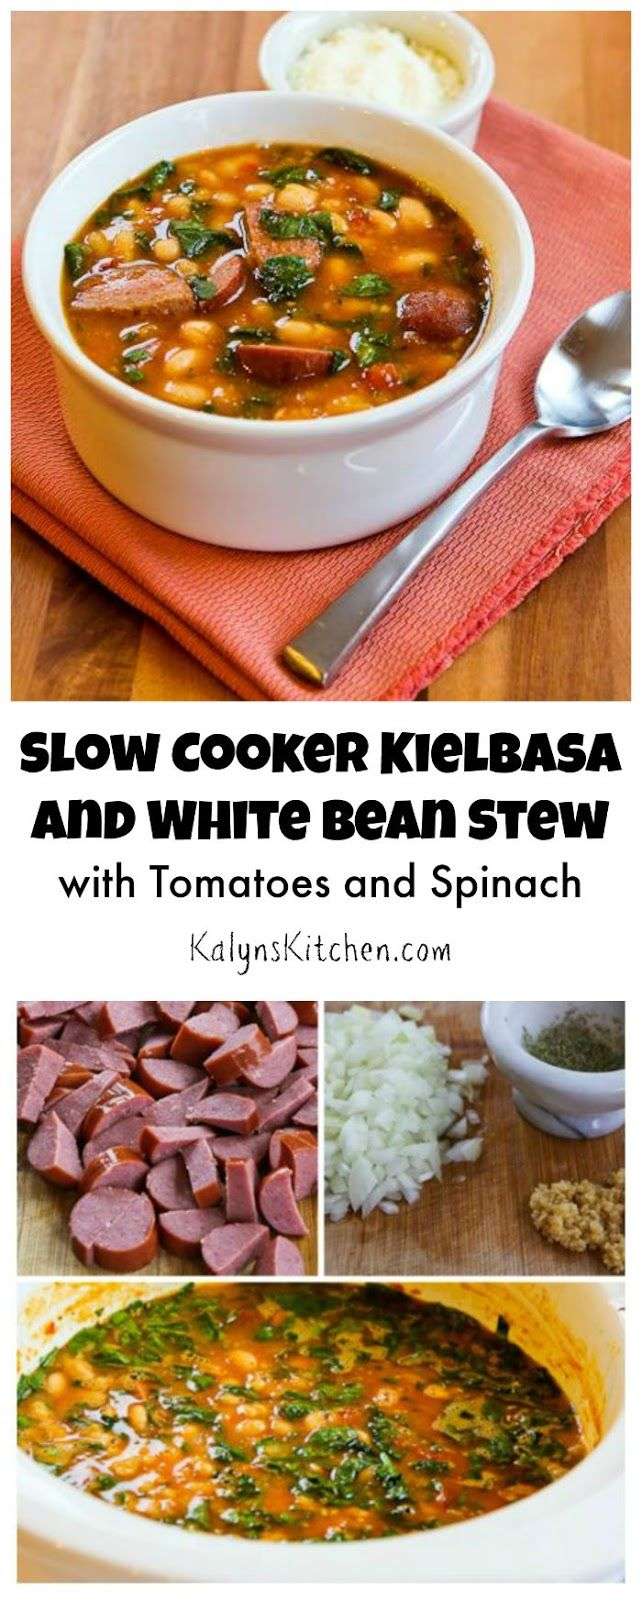 This Slow Cooker Kielbasa and White Bean Stew Recipe with Tomatoes and Spinach starts with dried white beans that cook all day in the slow cooker!  (Gluten-Free, Can Freeze) [from KalynsKitchen.com]